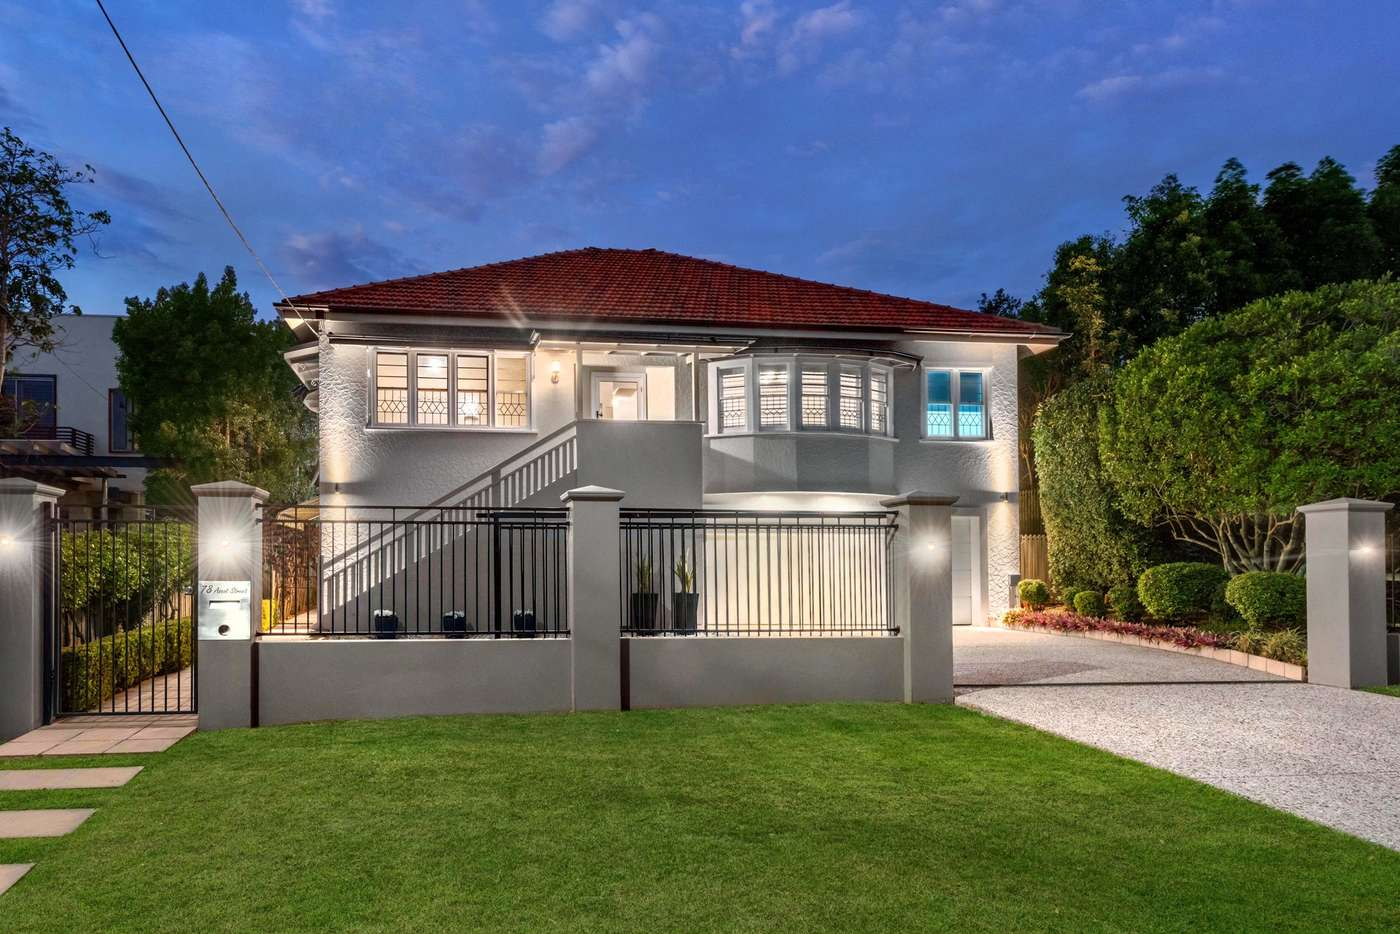 Main view of Homely house listing, 78 Ascot Street, Ascot QLD 4007